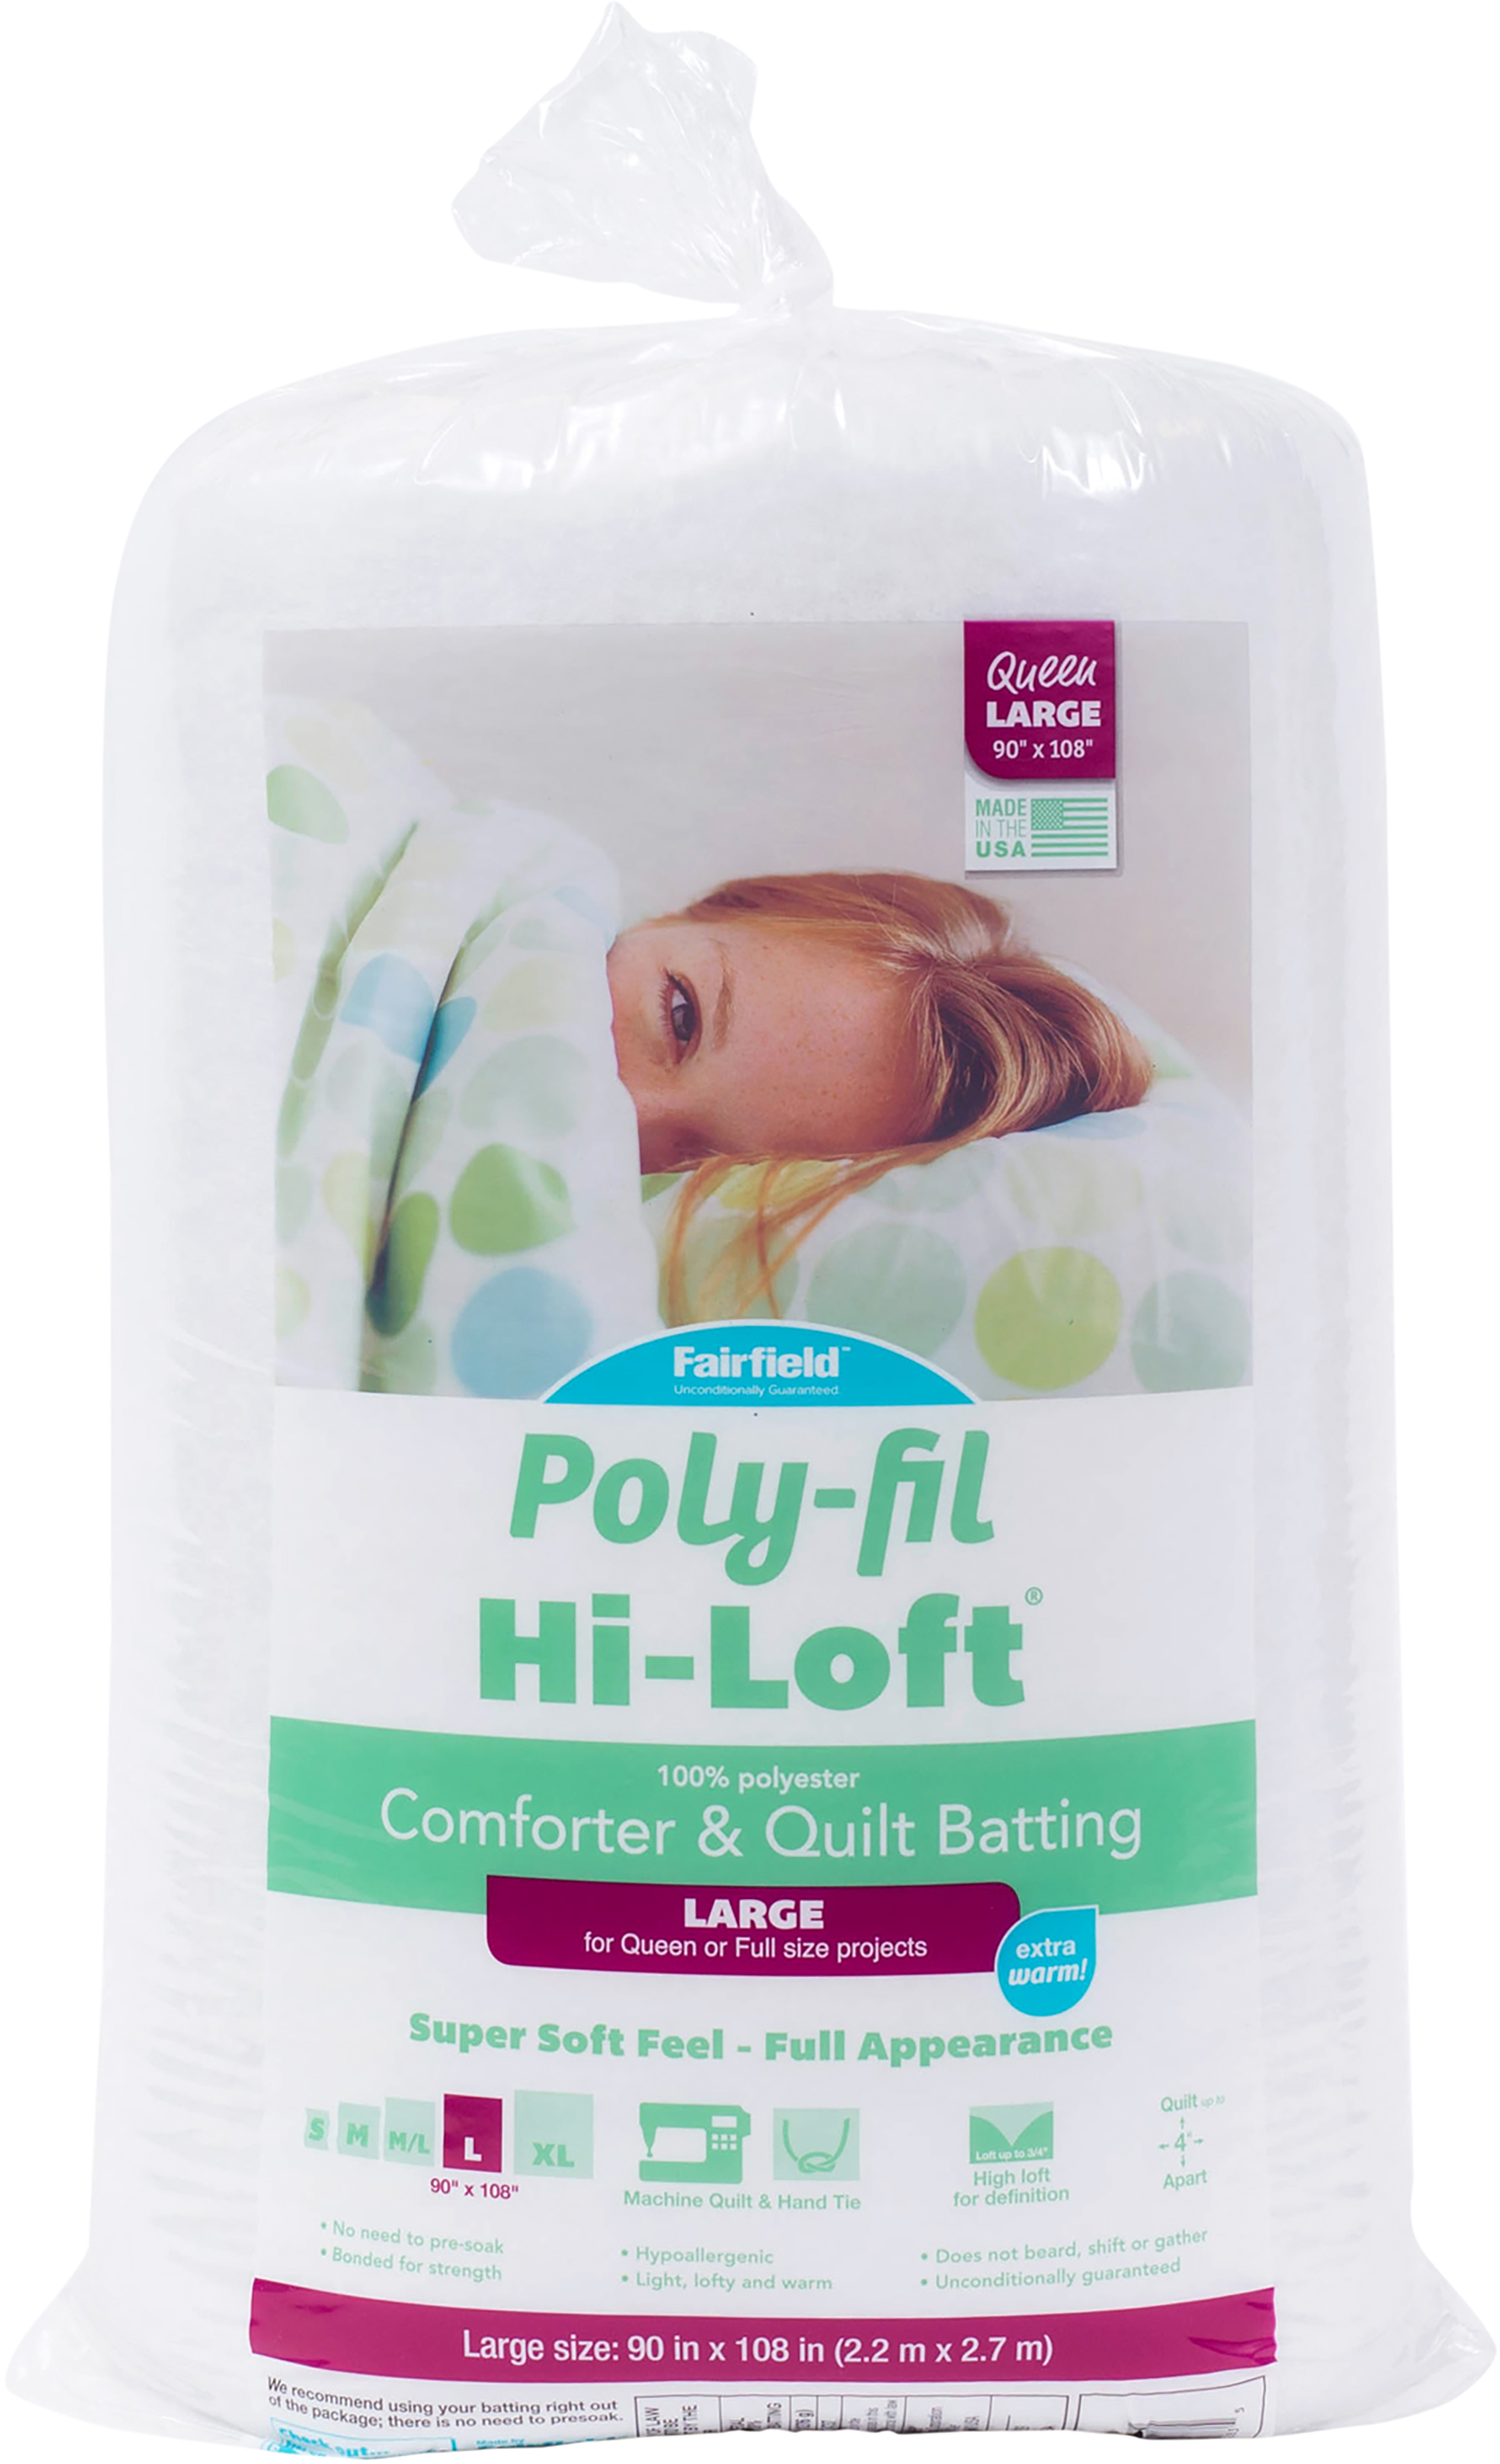 Fairfield Poly-Fil Hi-Loft Bonded Polyester Quilt Batting-Queen Size FOB: MI